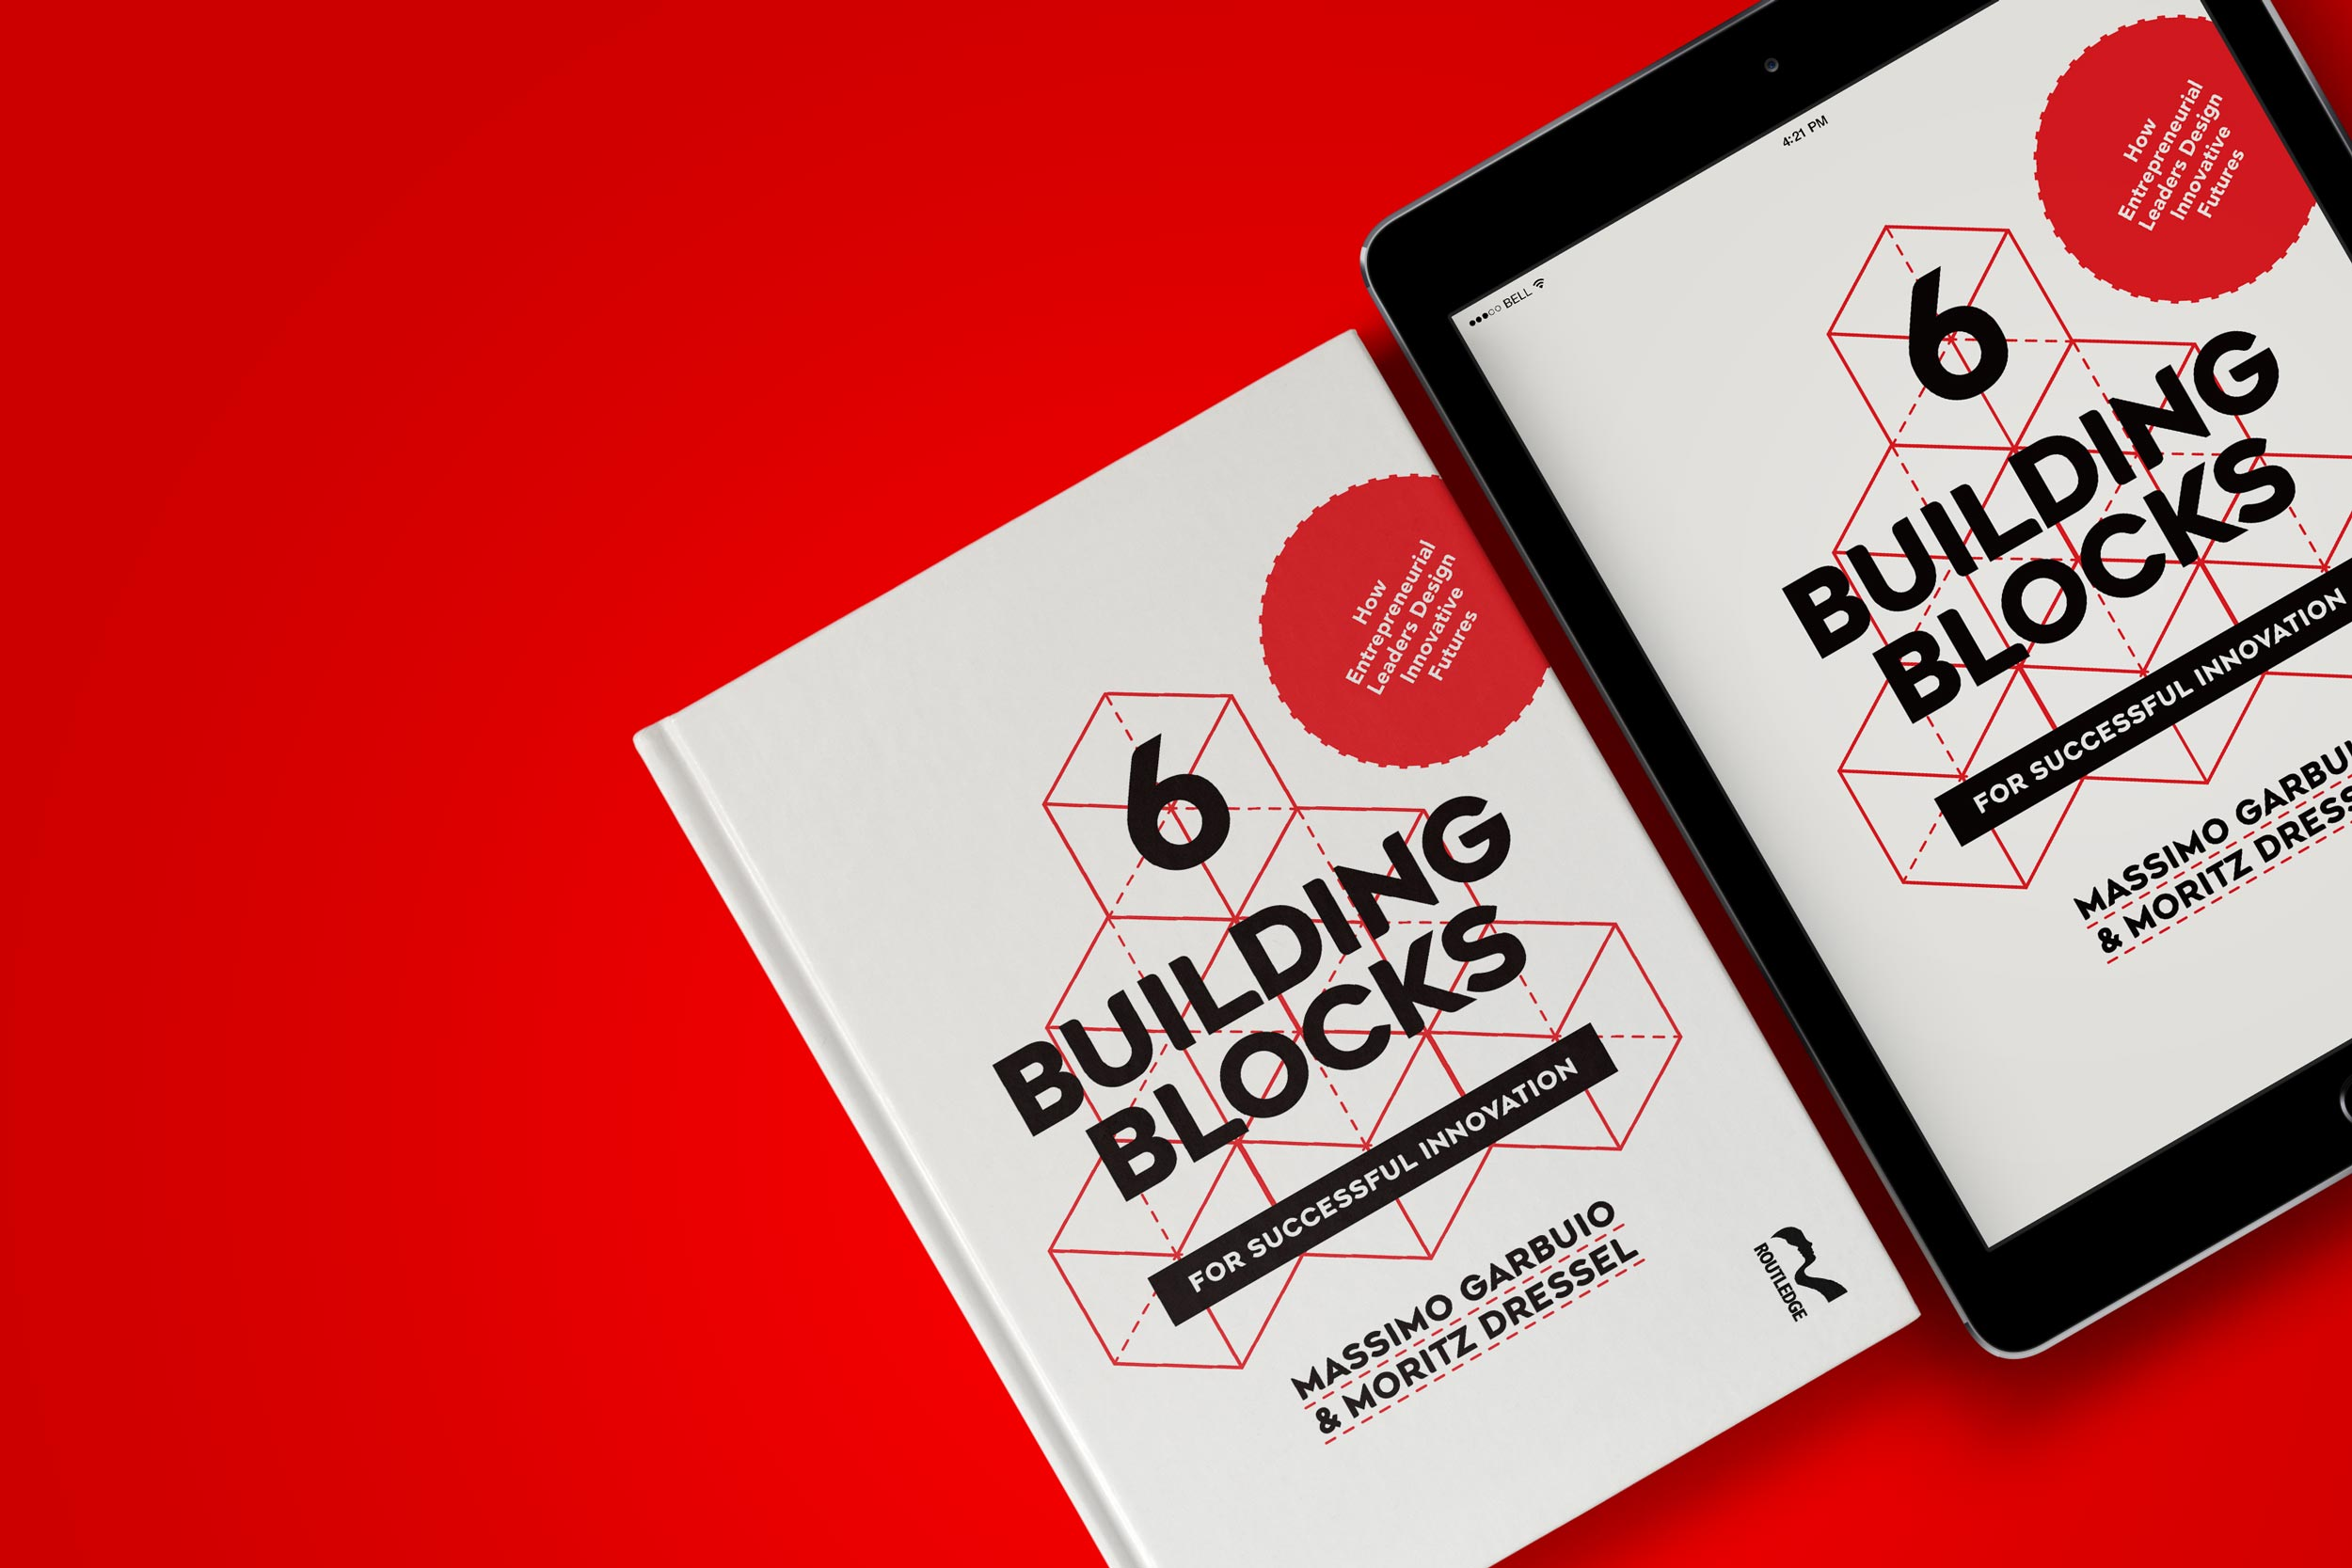 6 Building Blocks for Successful Innovation - Available now in a hard cover print edition and an eBook.See outline > Read reviews >